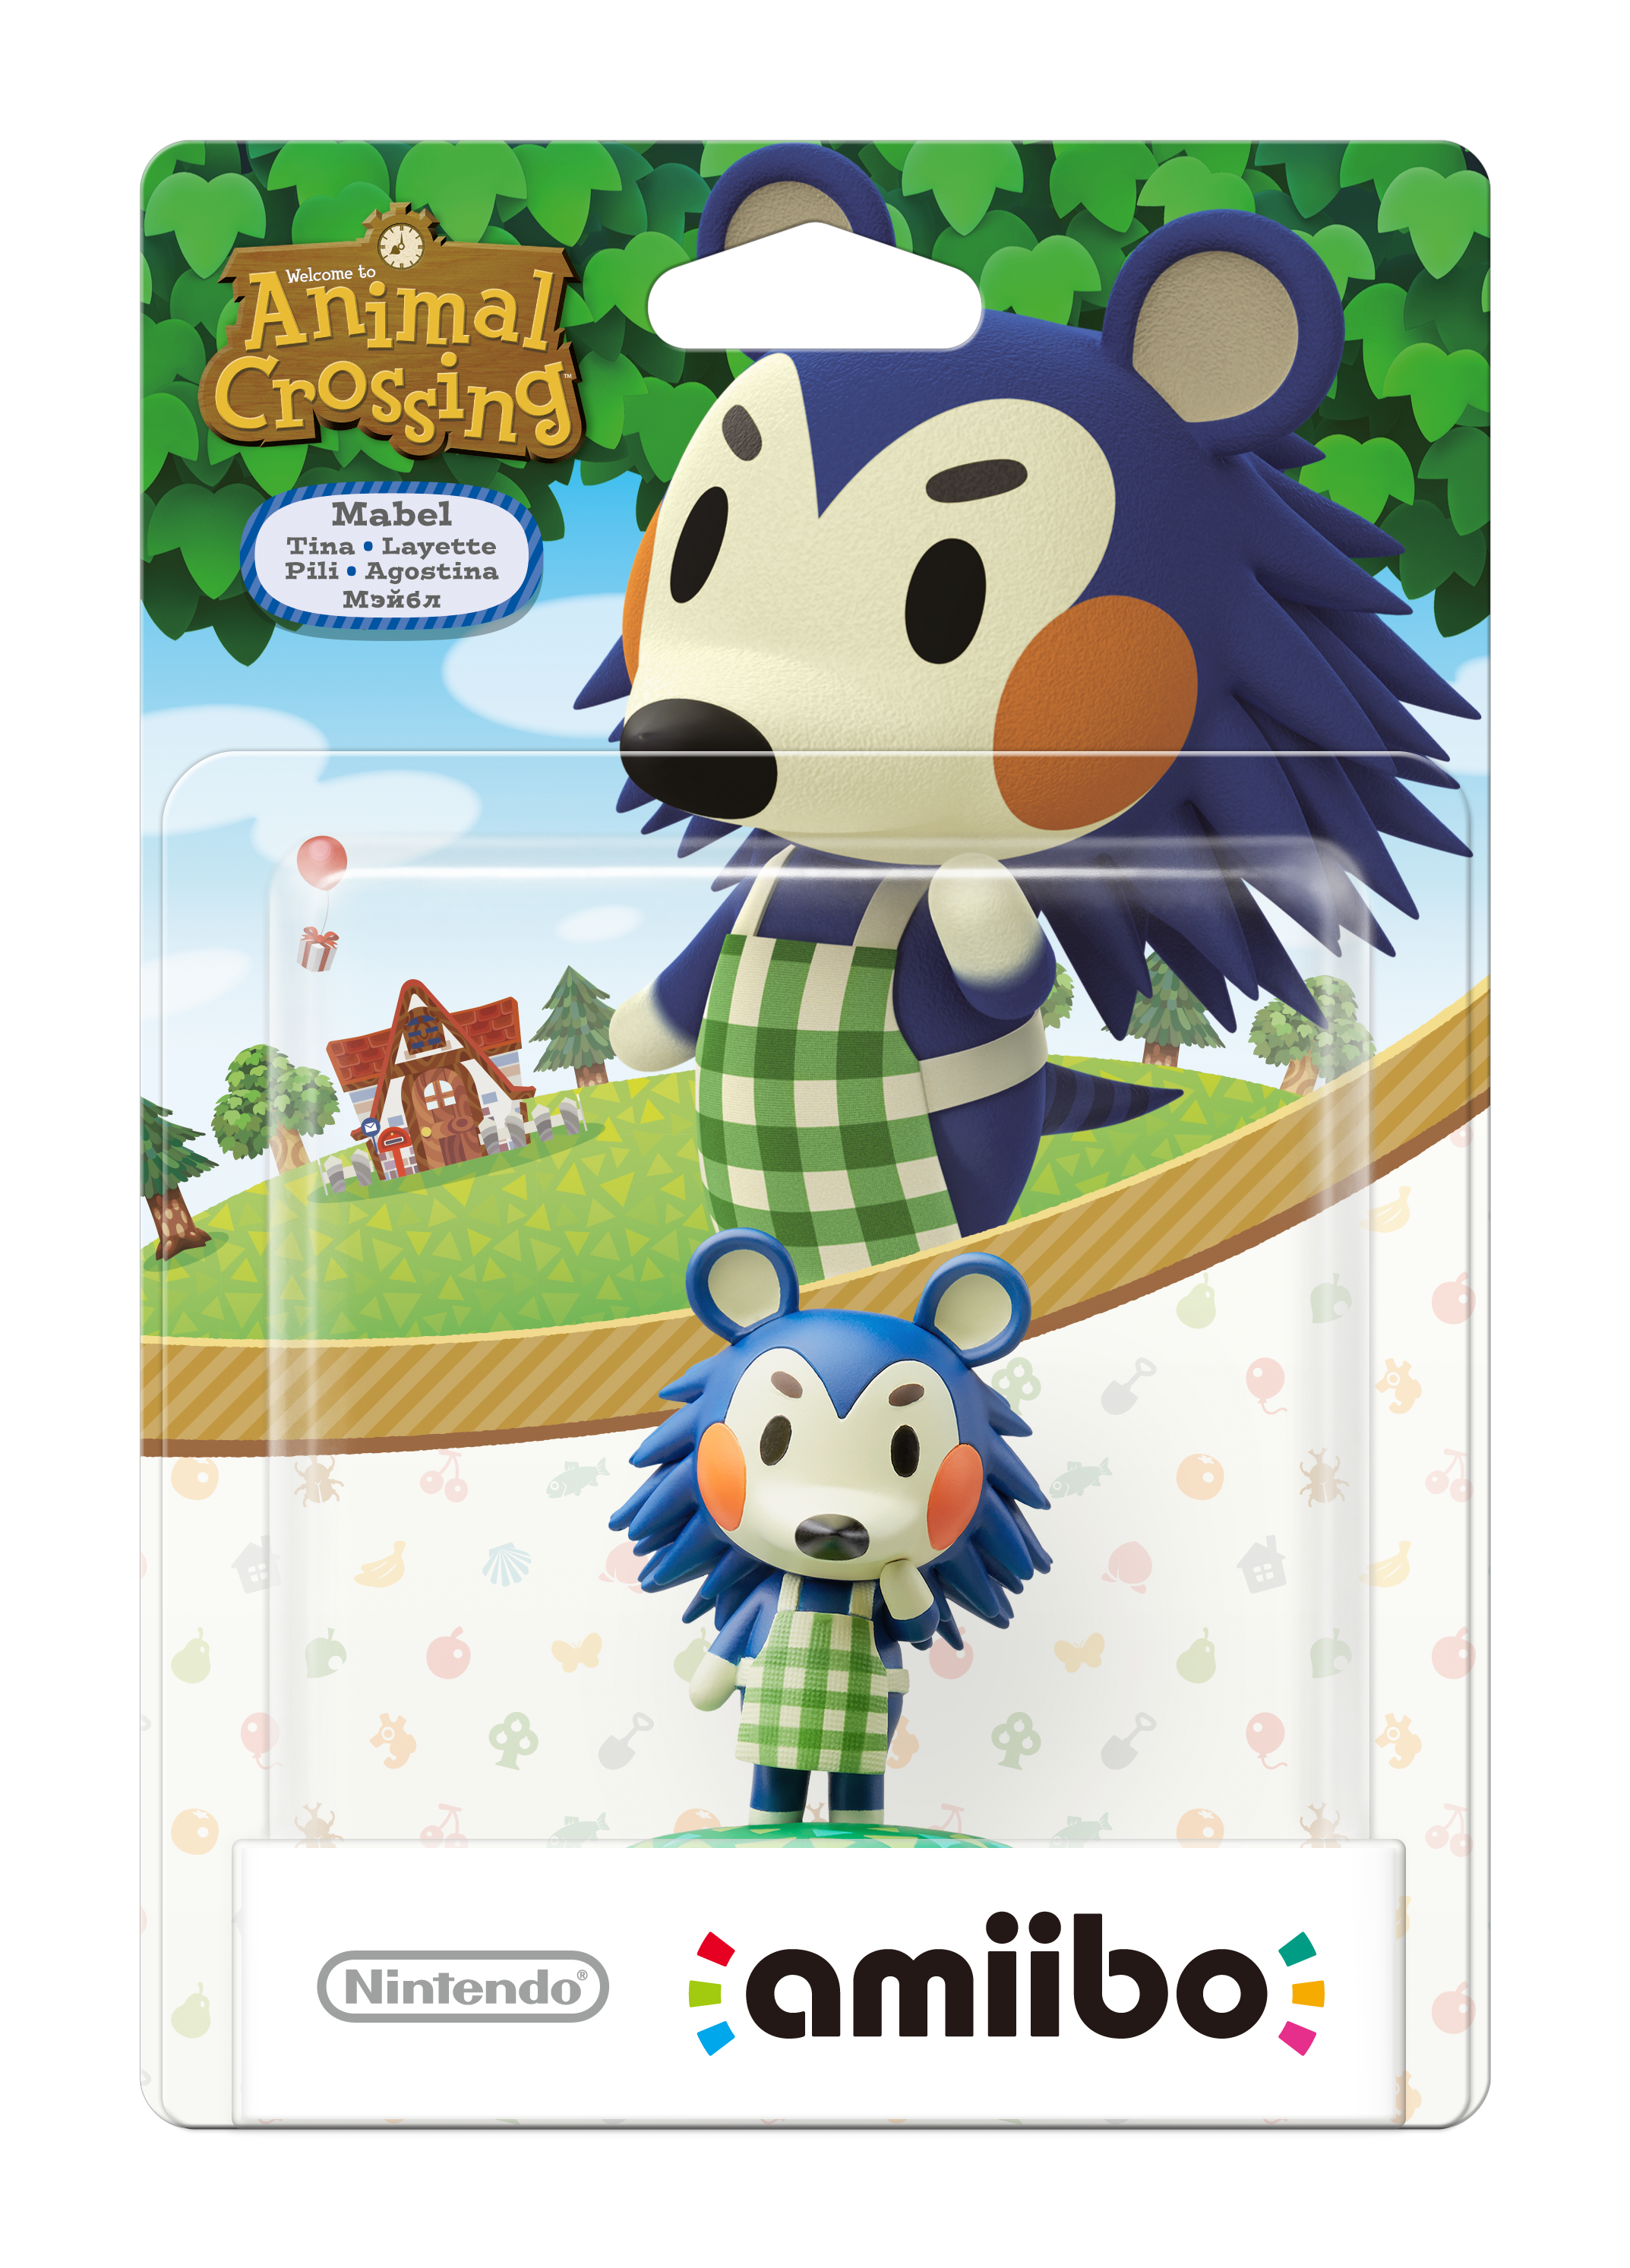 Animal crossing amiibo virtual town nintendo amiibo - Happy home designer amiibo figures ...